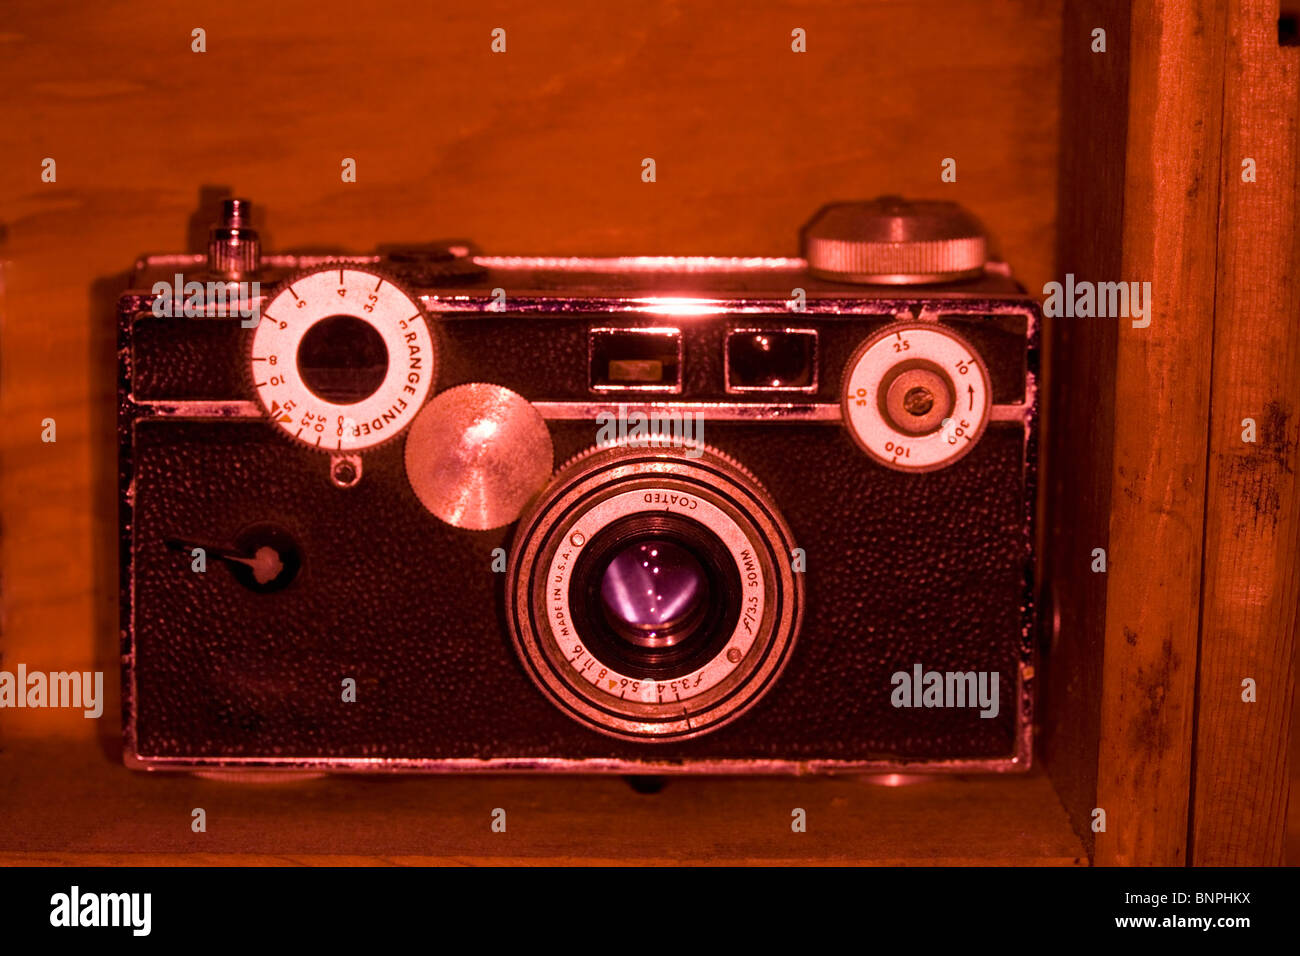 An old camera - Stock Image